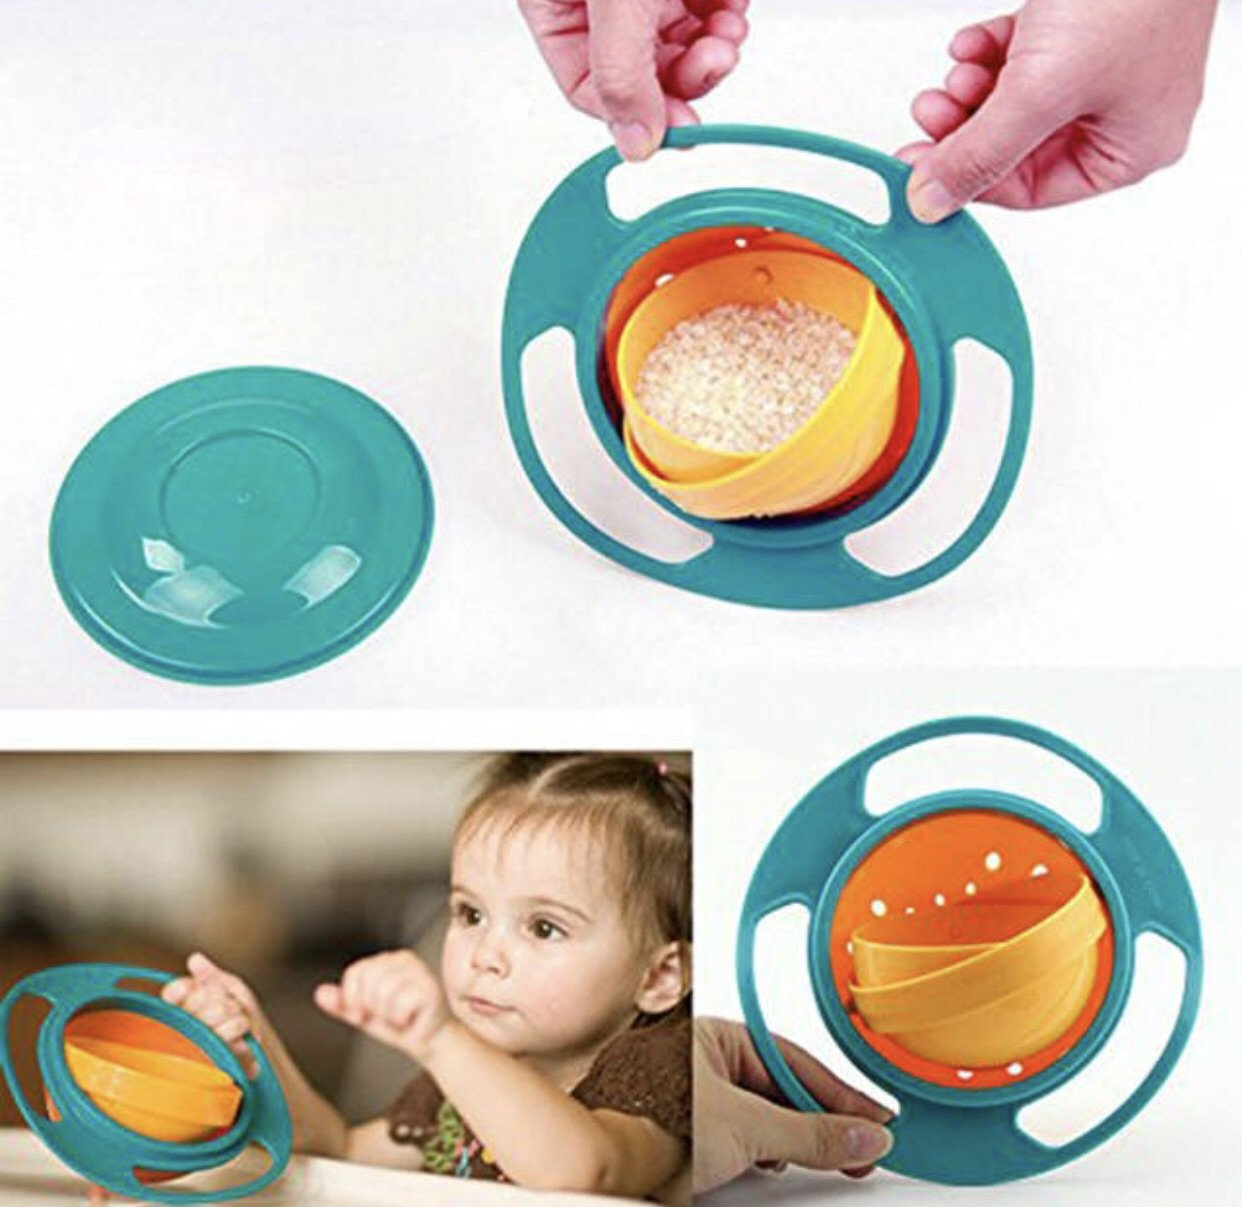 ABZ Ultimate Baby Bowl (Buy 1 get 3!) - GoinsShop